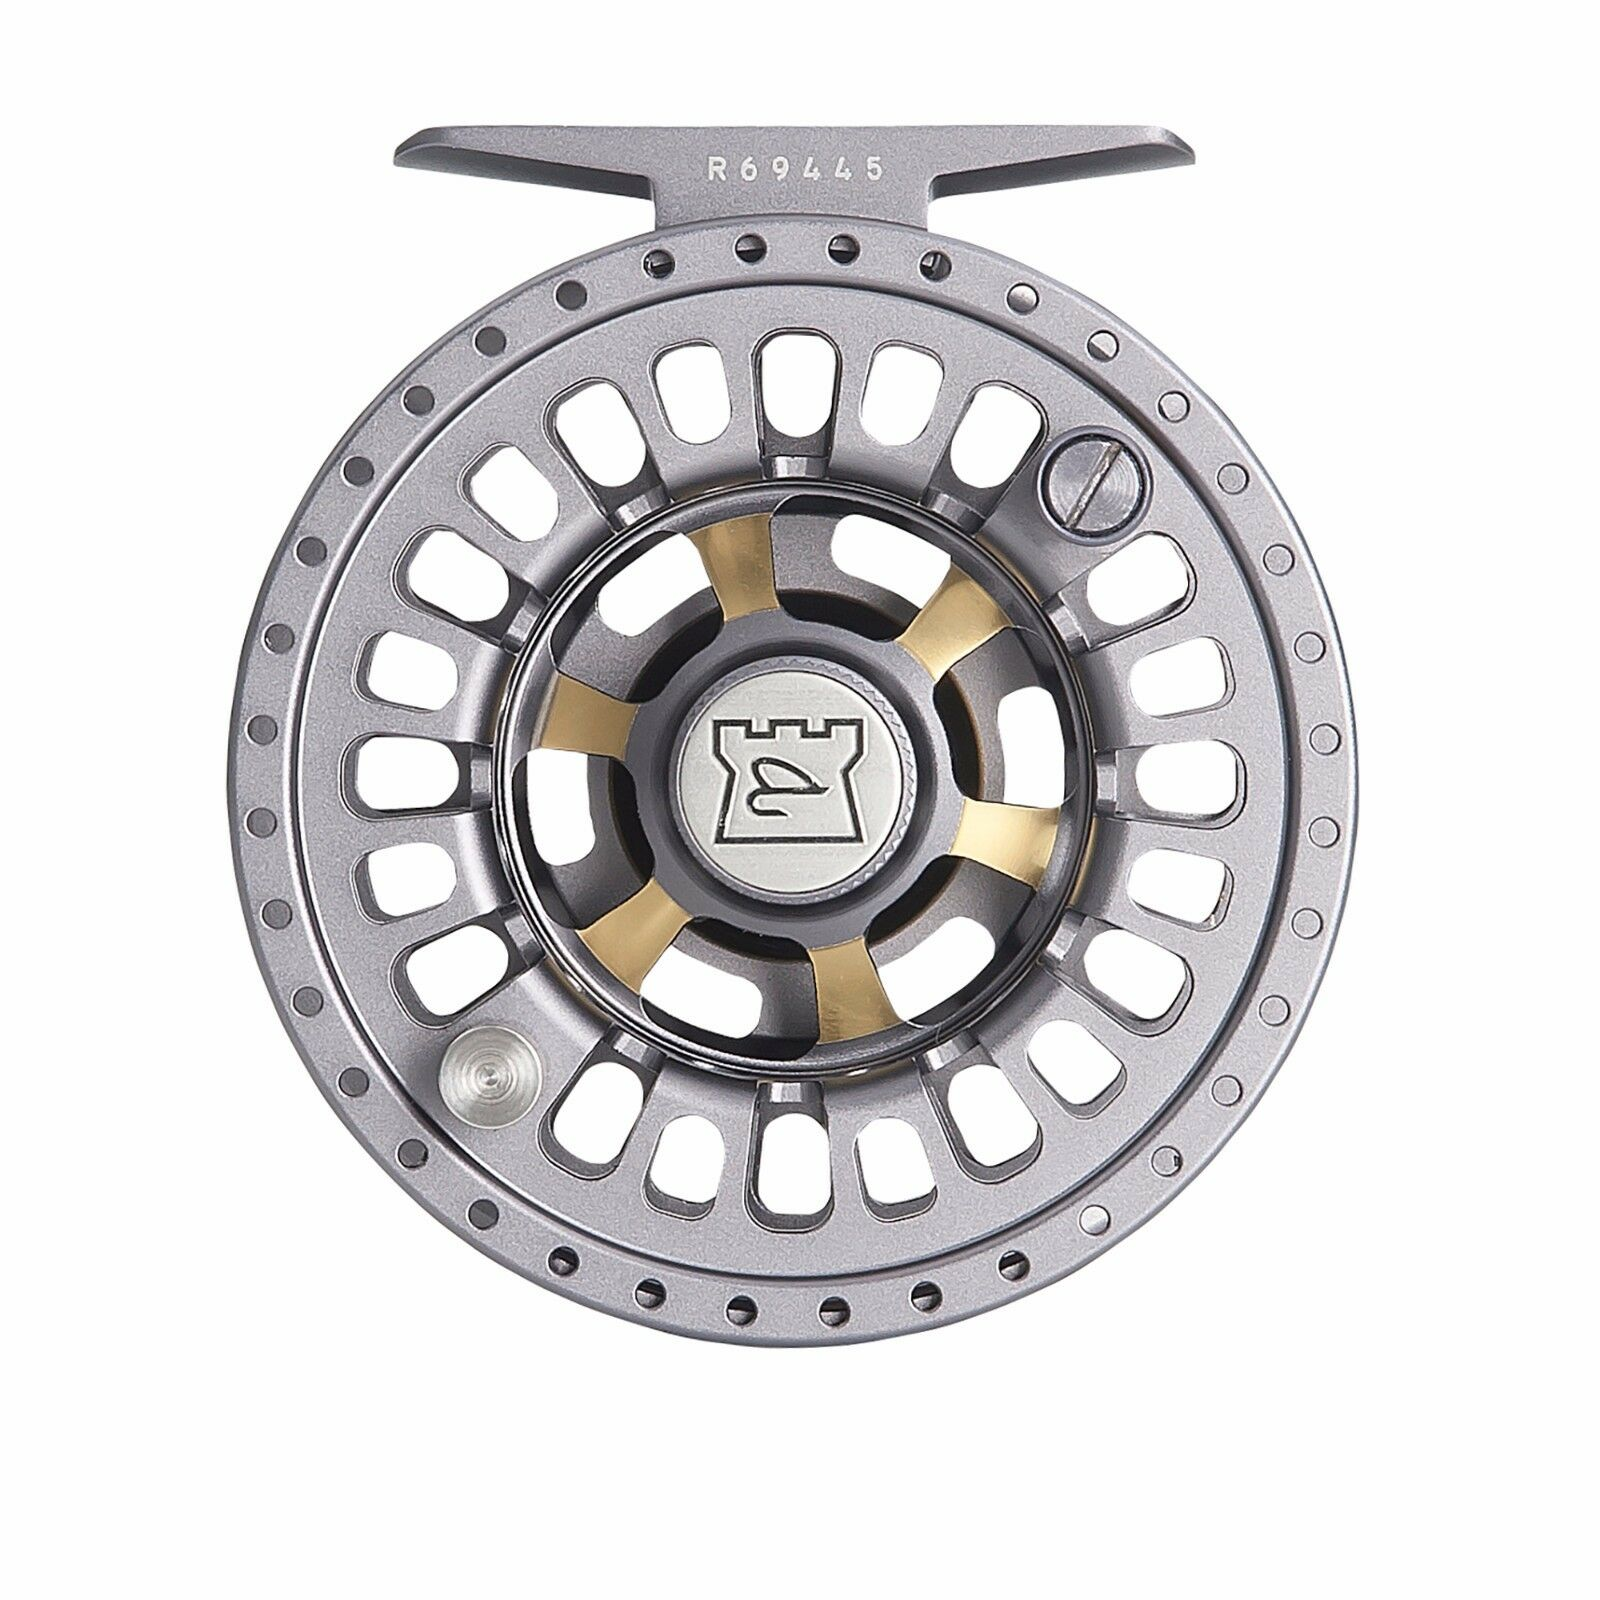 Hardy Ultralite MA Fly Reel